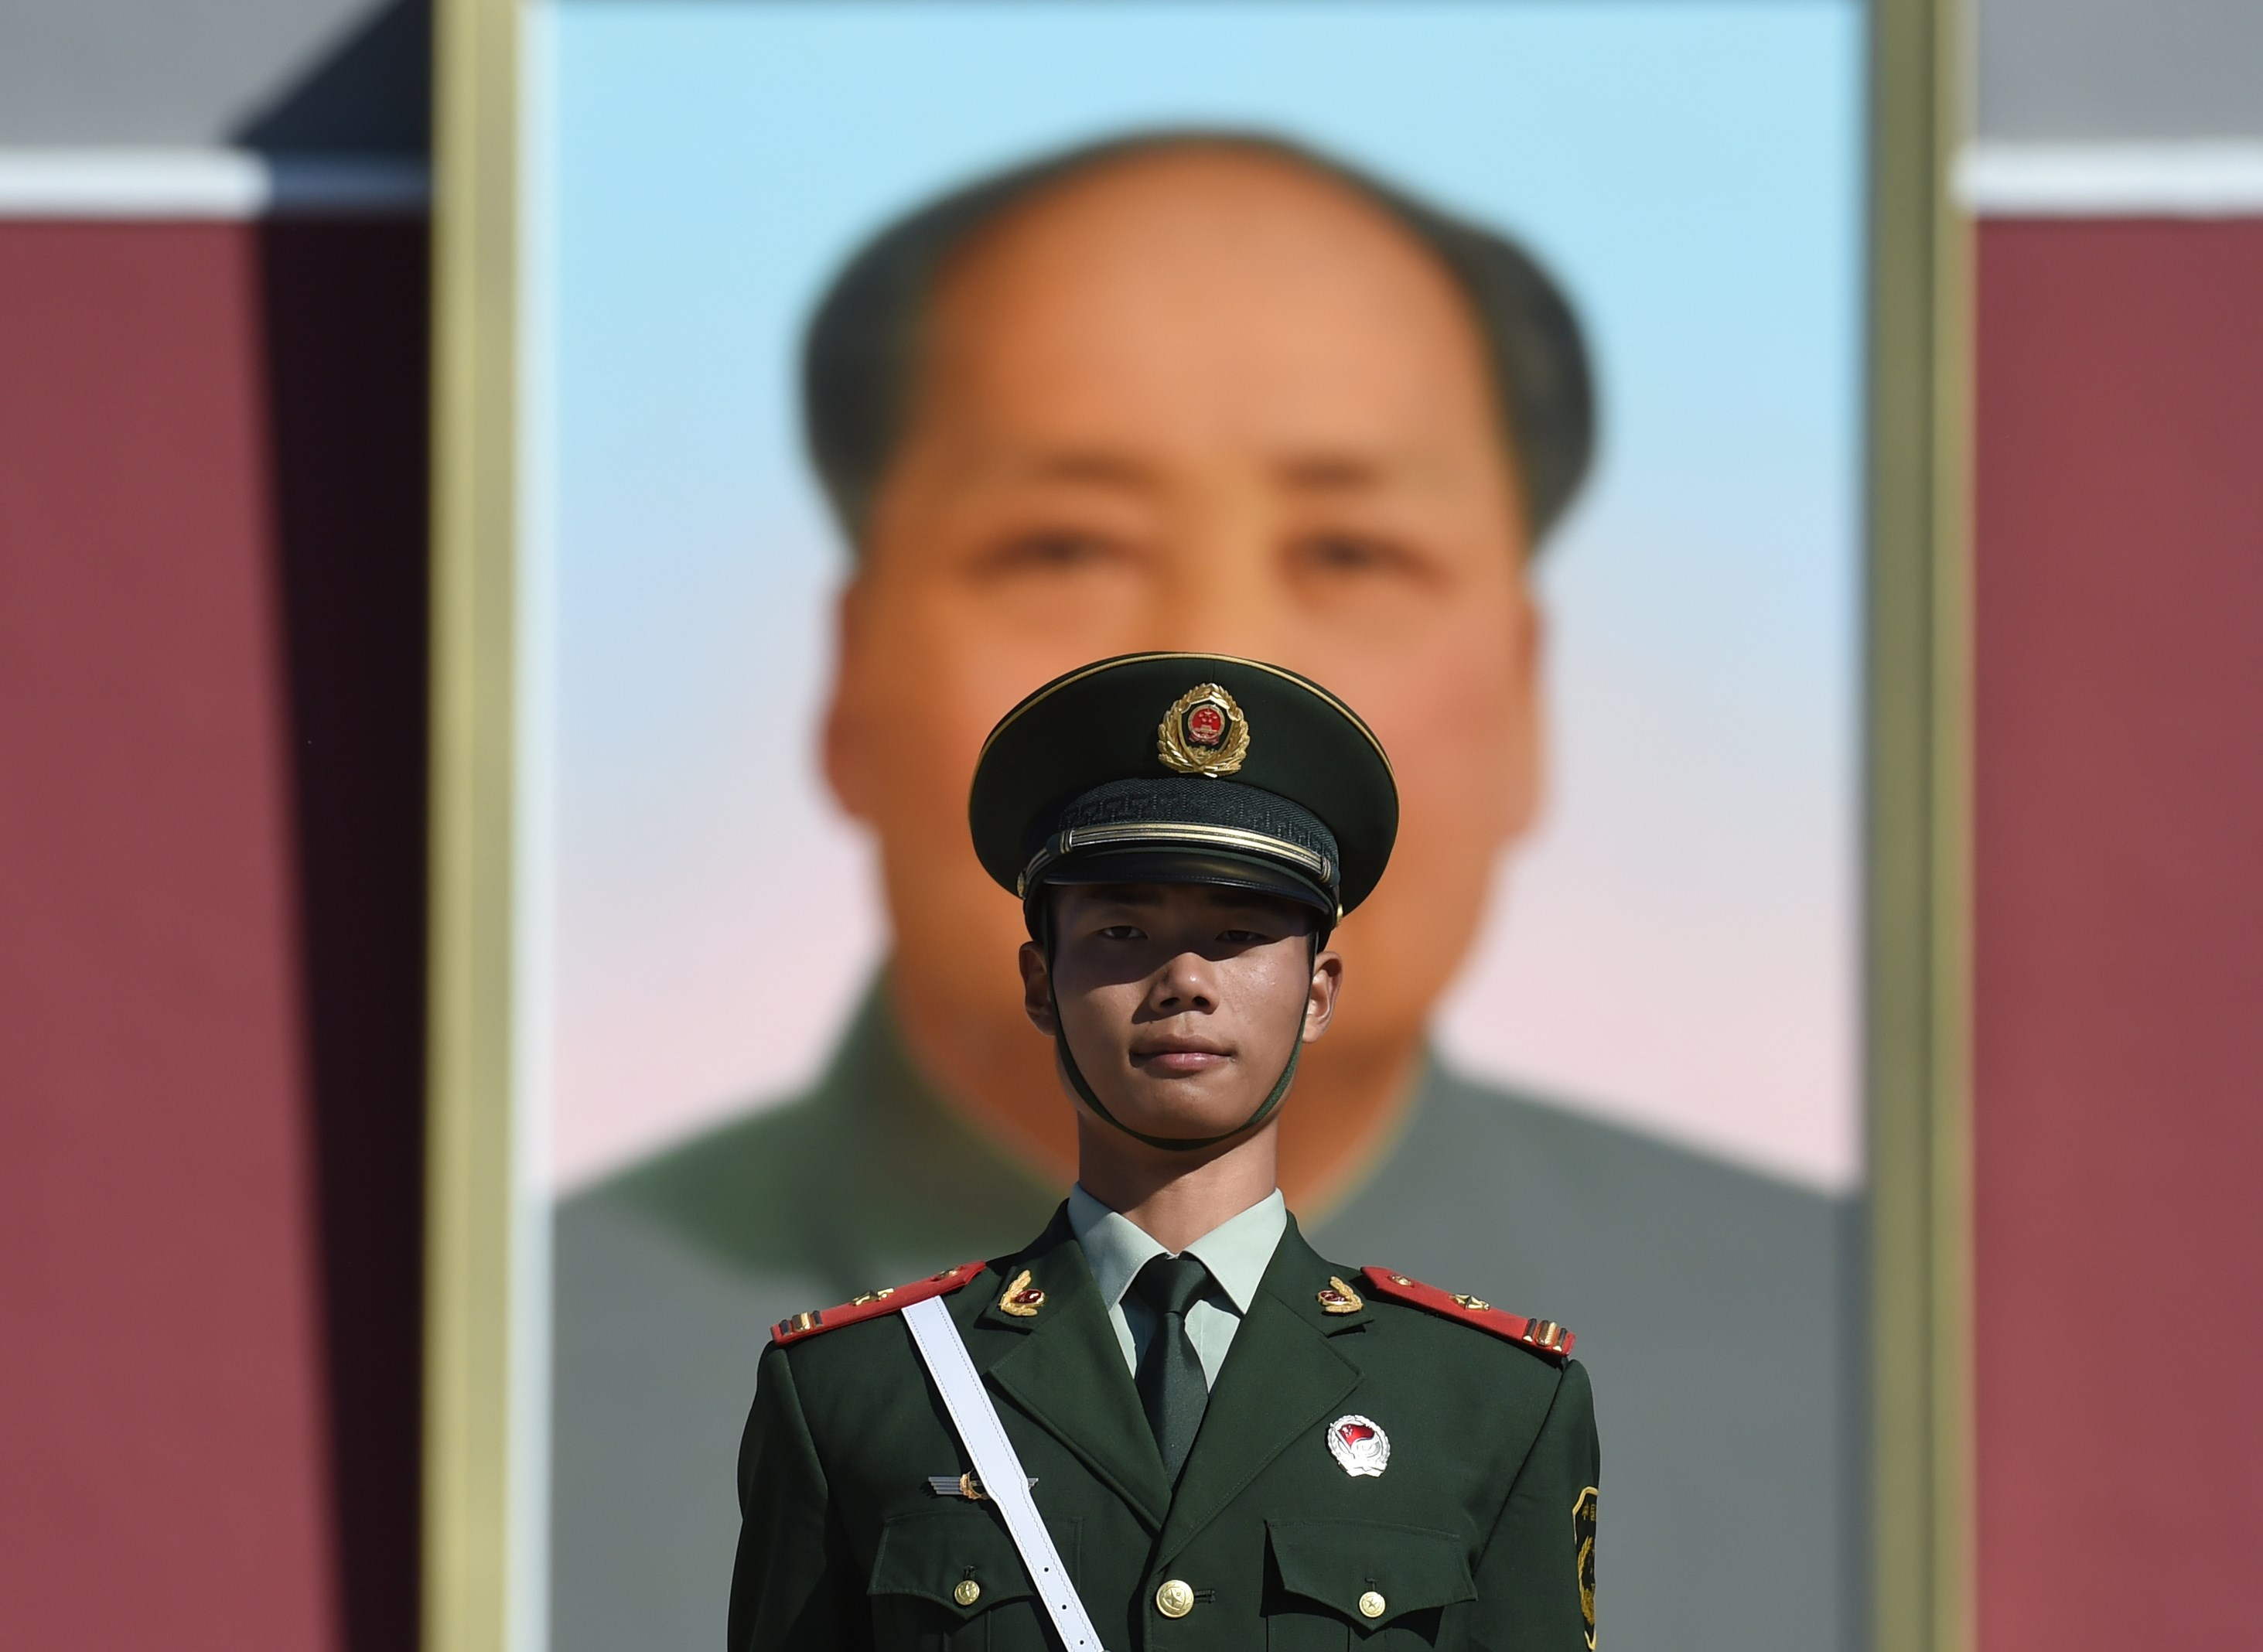 A paramilitary policeman stands guard in front of the portrait of late communist leader Mao Zedong at Tiananmen Square in Beijing on Oct. 1, 2015